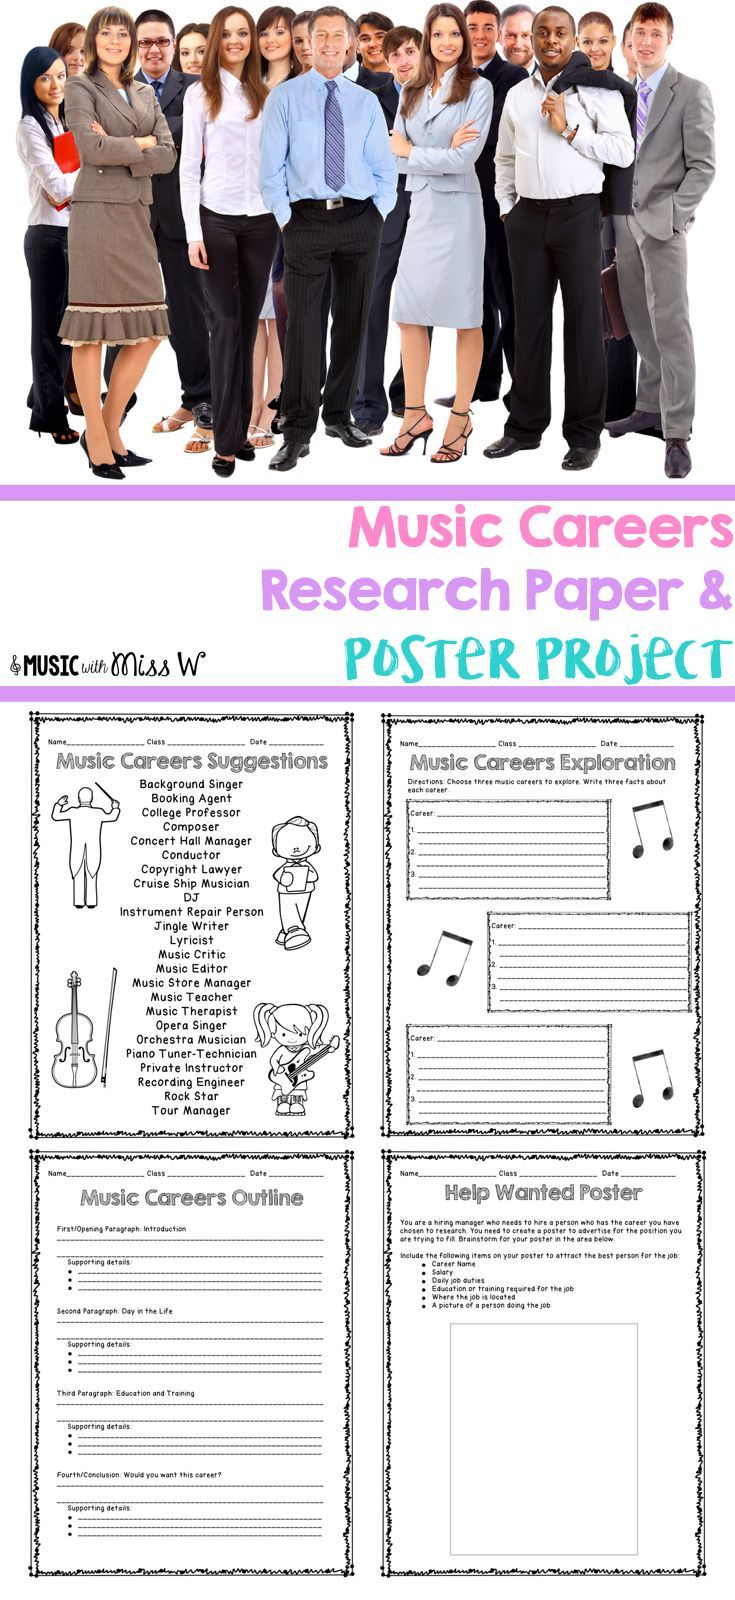 I'm planning to use this music careers research project after my concert this year with my middle school students. Love that most of what I need is already set up for me and it includes an editable rubric. My school is big on cross curricular projects that include writing so this is perfect!